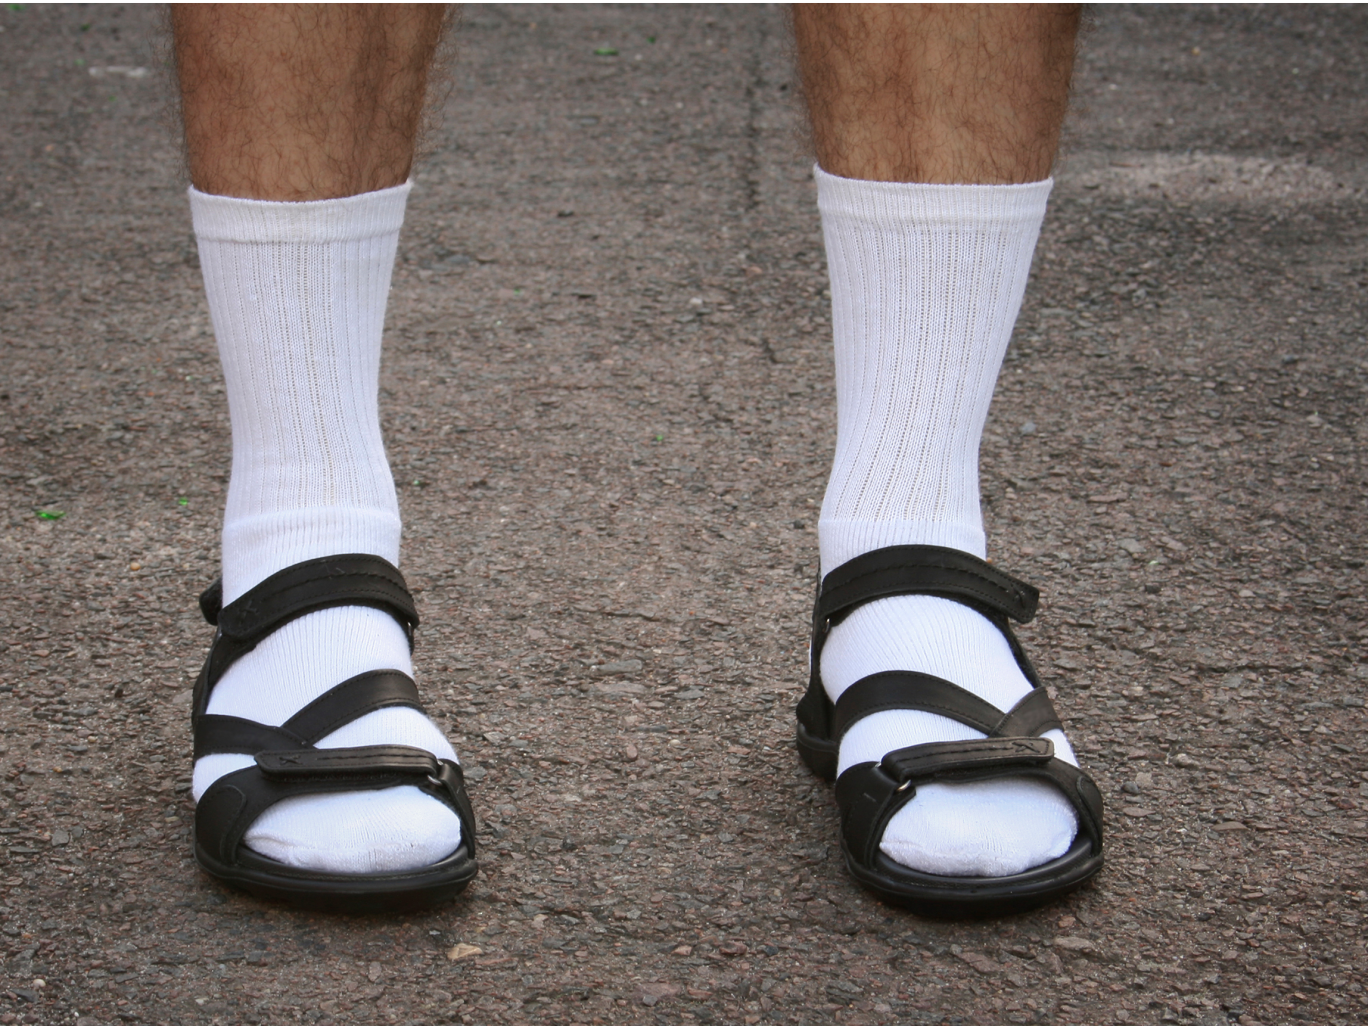 """oscarthewild's photos in """"Socks and sandals: The unlikely hottest new trend in men's fashion"""""""